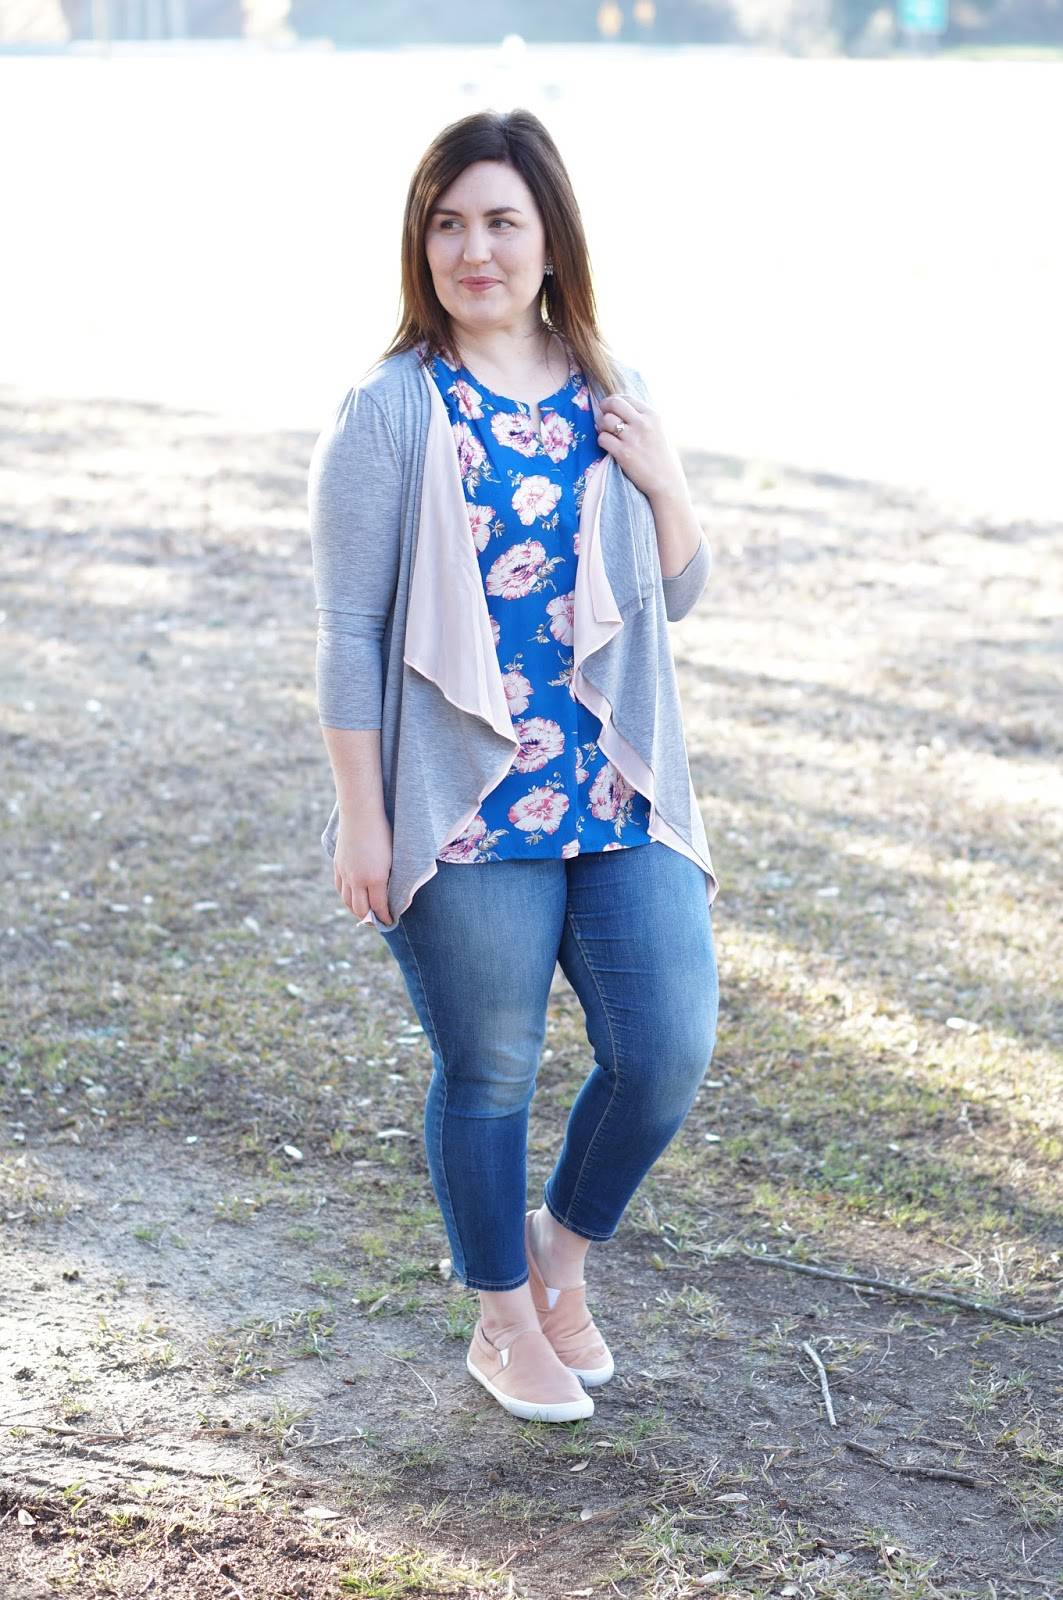 Rebecca Lately Rosegal Patchwork Cardigan Old Navy Rockstar Jeans Old Navy Pink Slip On Sneakers Daniel Rainn Floral Top